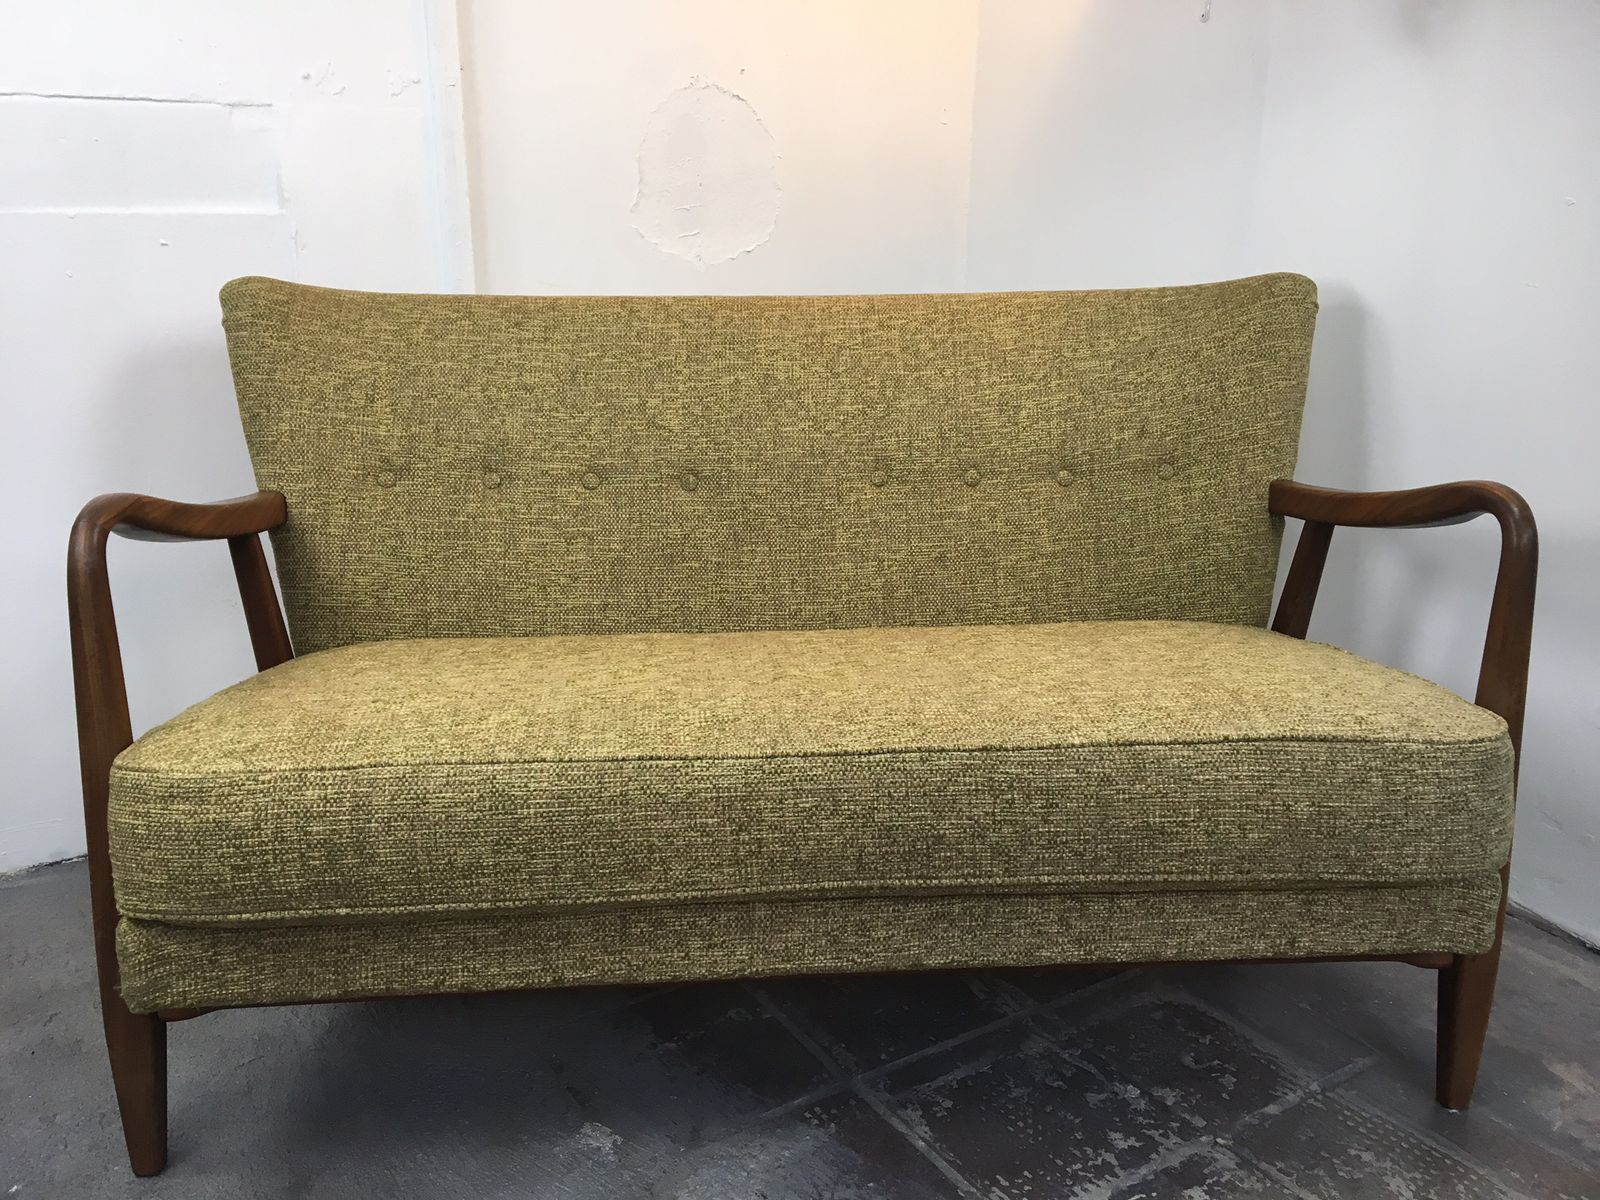 danish mid century modern two seater sofa 1950s - Mid Century Modern Furniture Of The 1950s